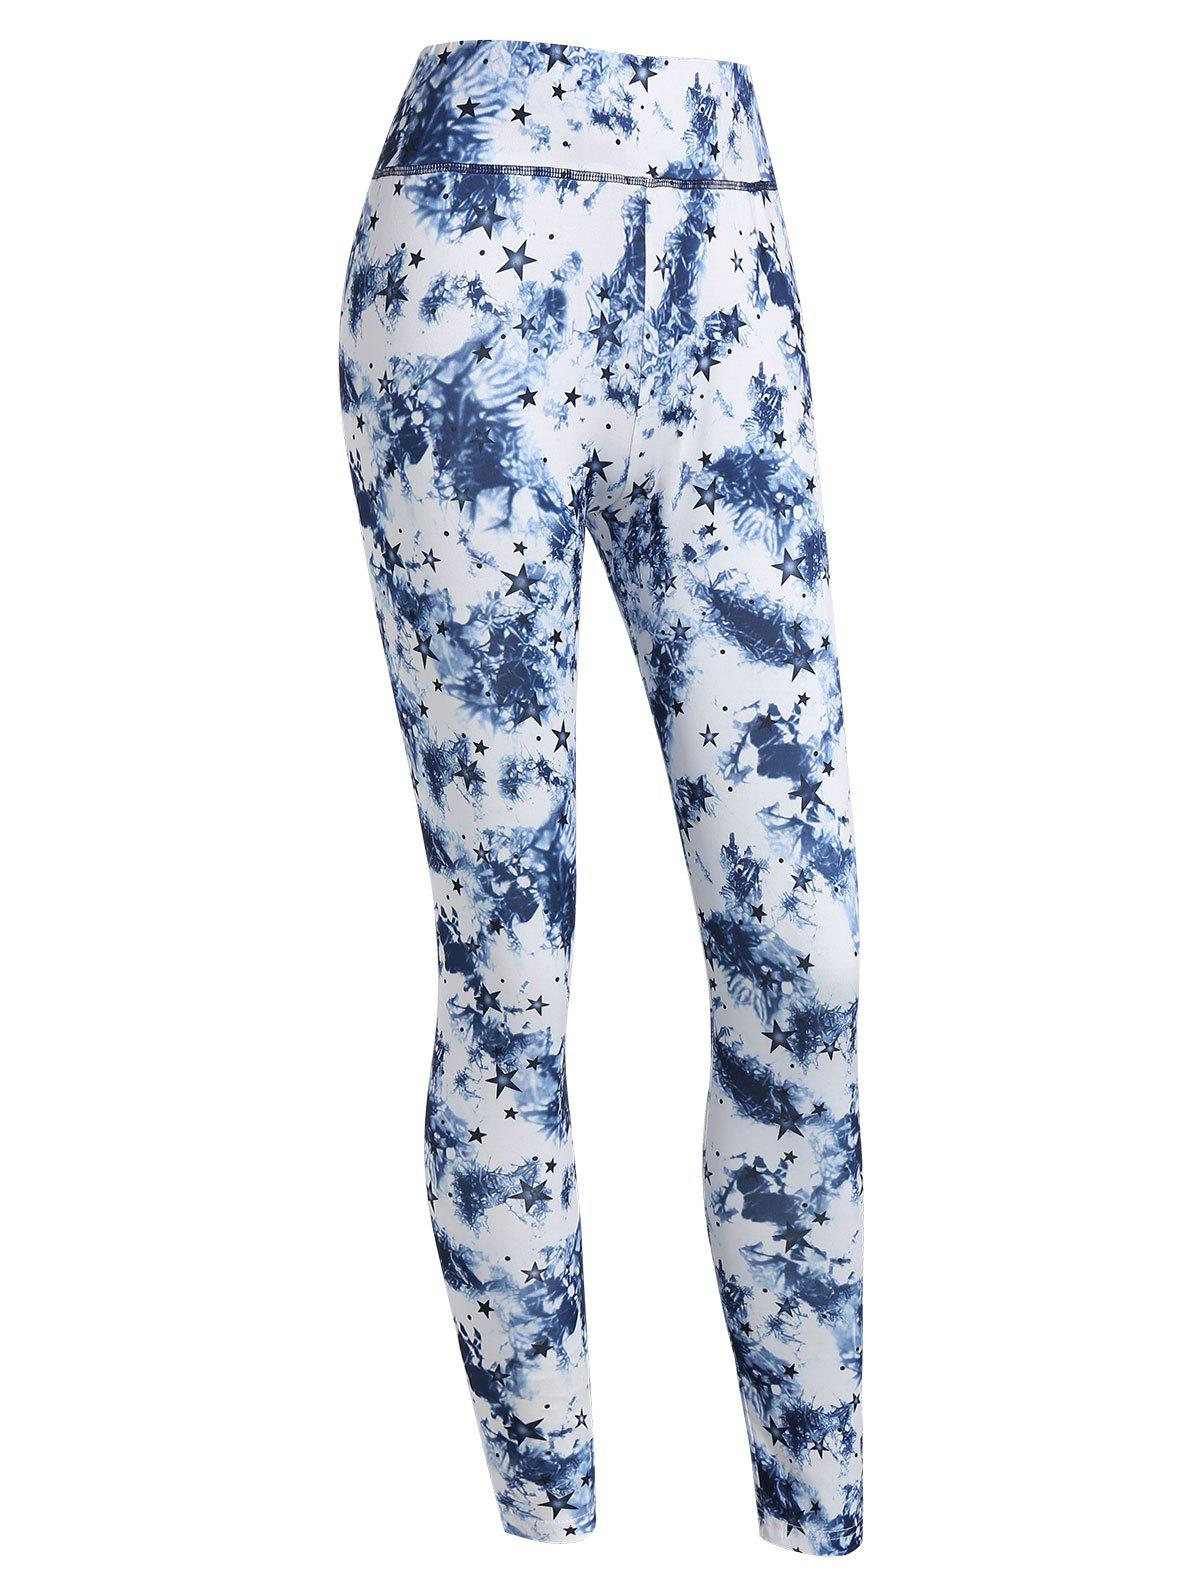 Unique High Waisted Stars and Tie Dye Print Leggings